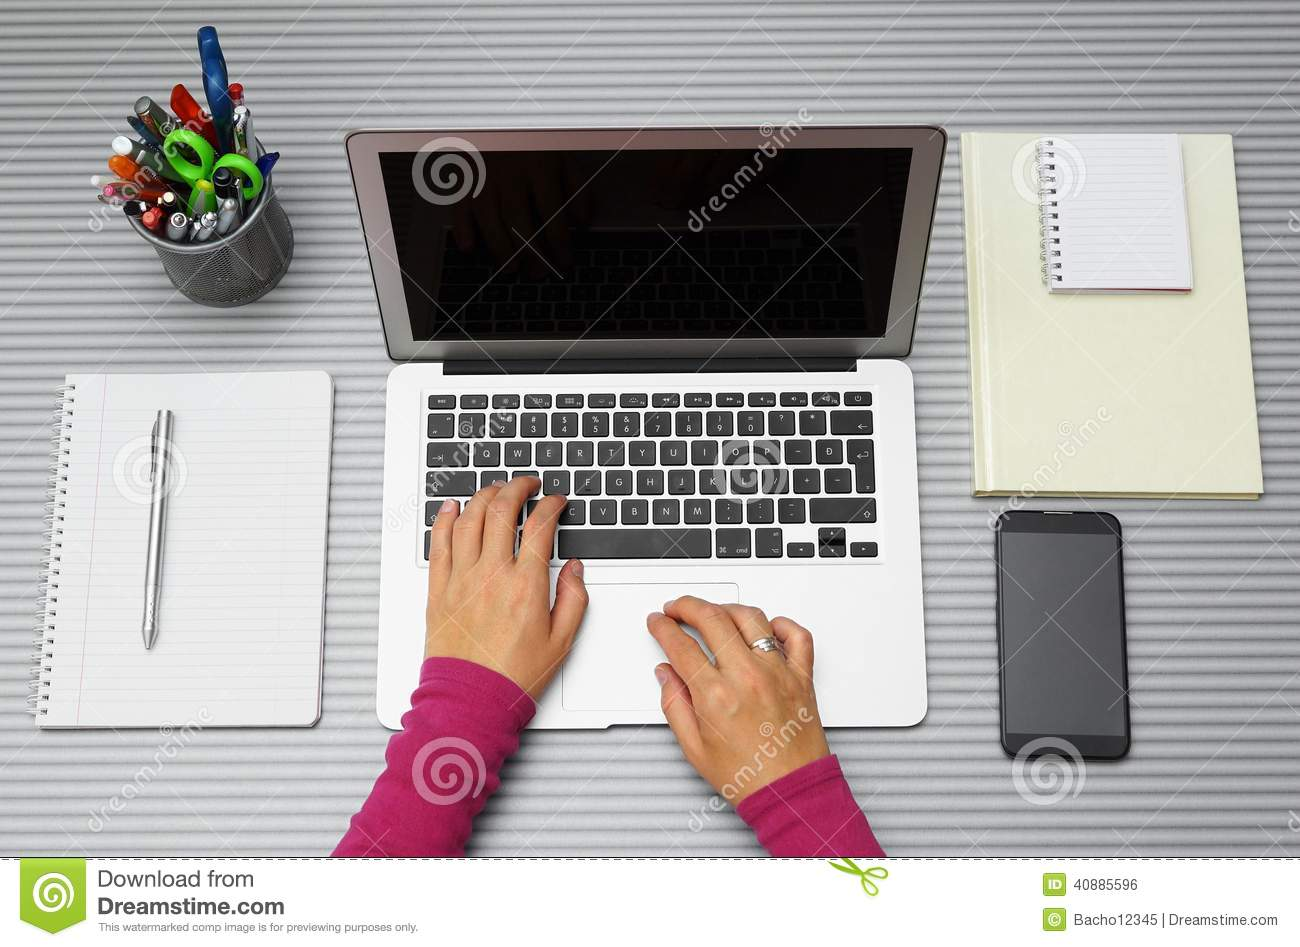 Top view of woman working with laptop in office or at home